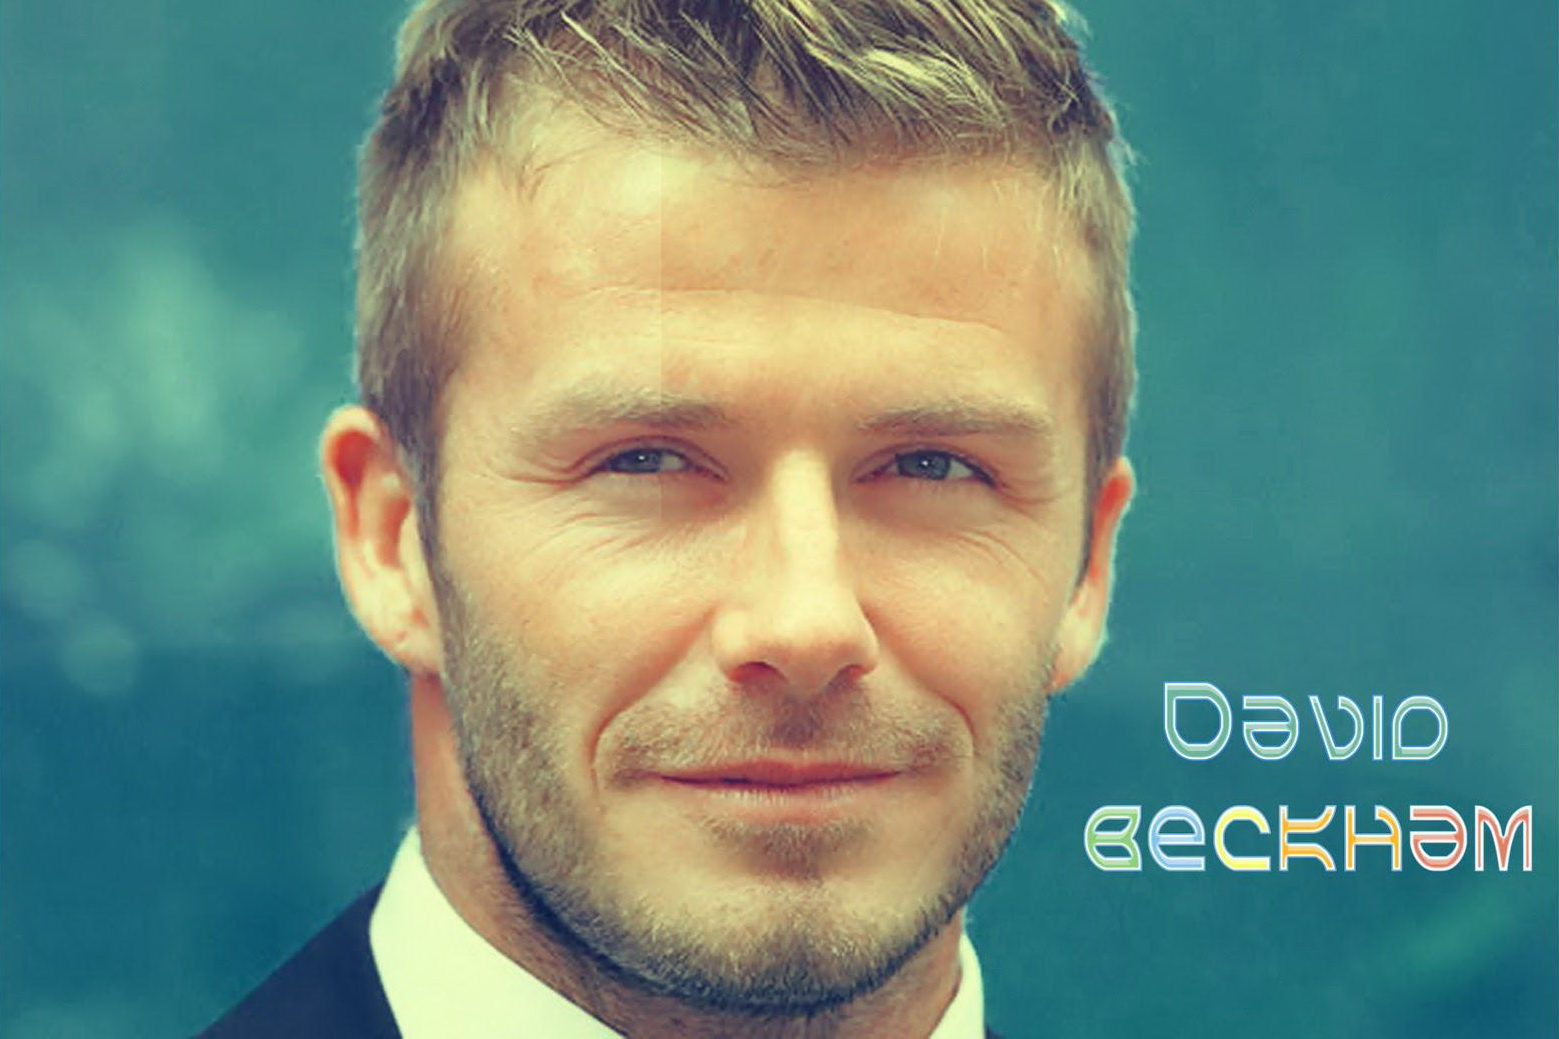 David Beckham HD Pictures & Wallpapers